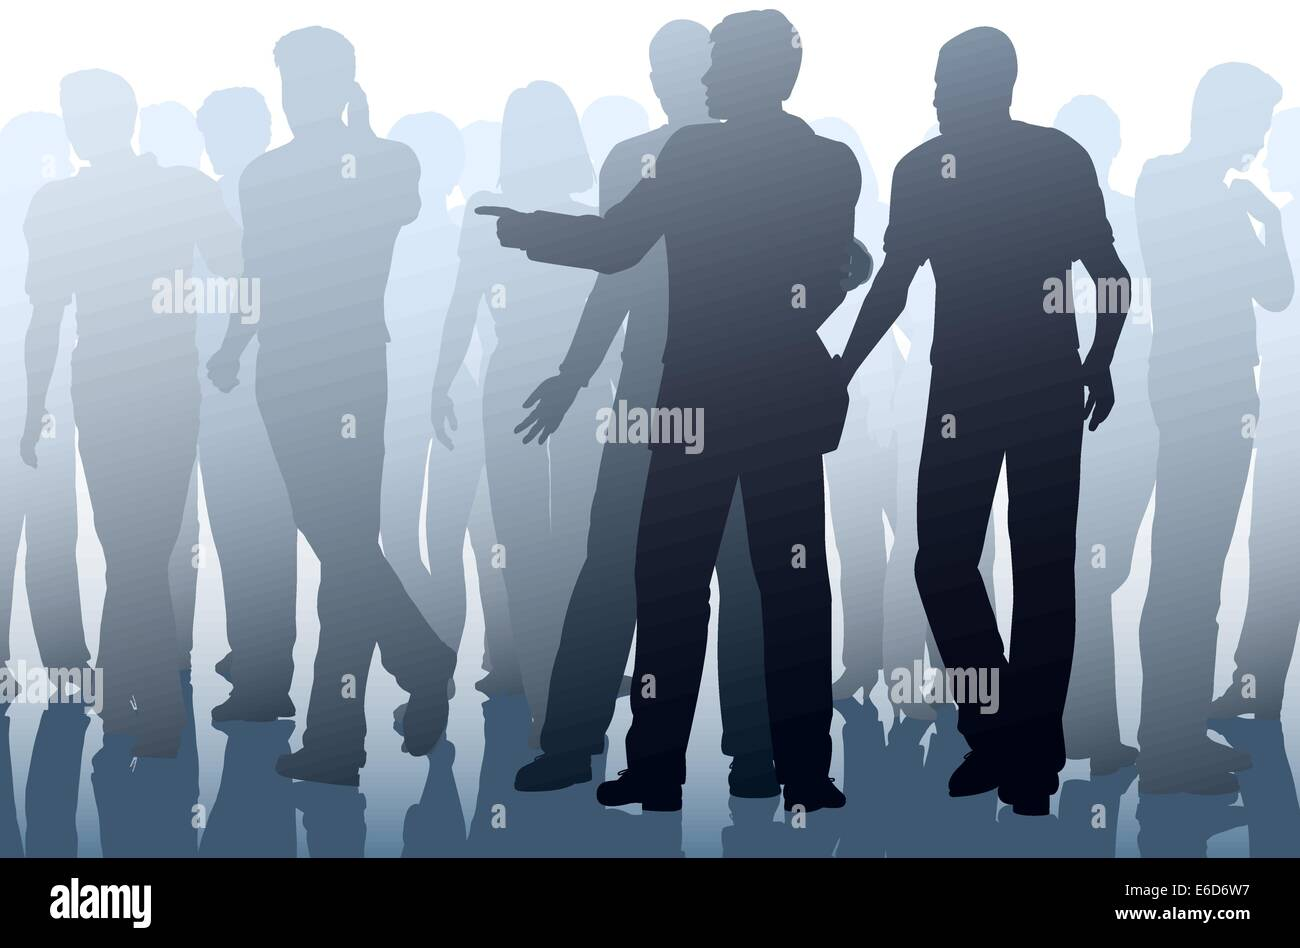 Editable vector illustration of two men working together as pickpockets - Stock Vector